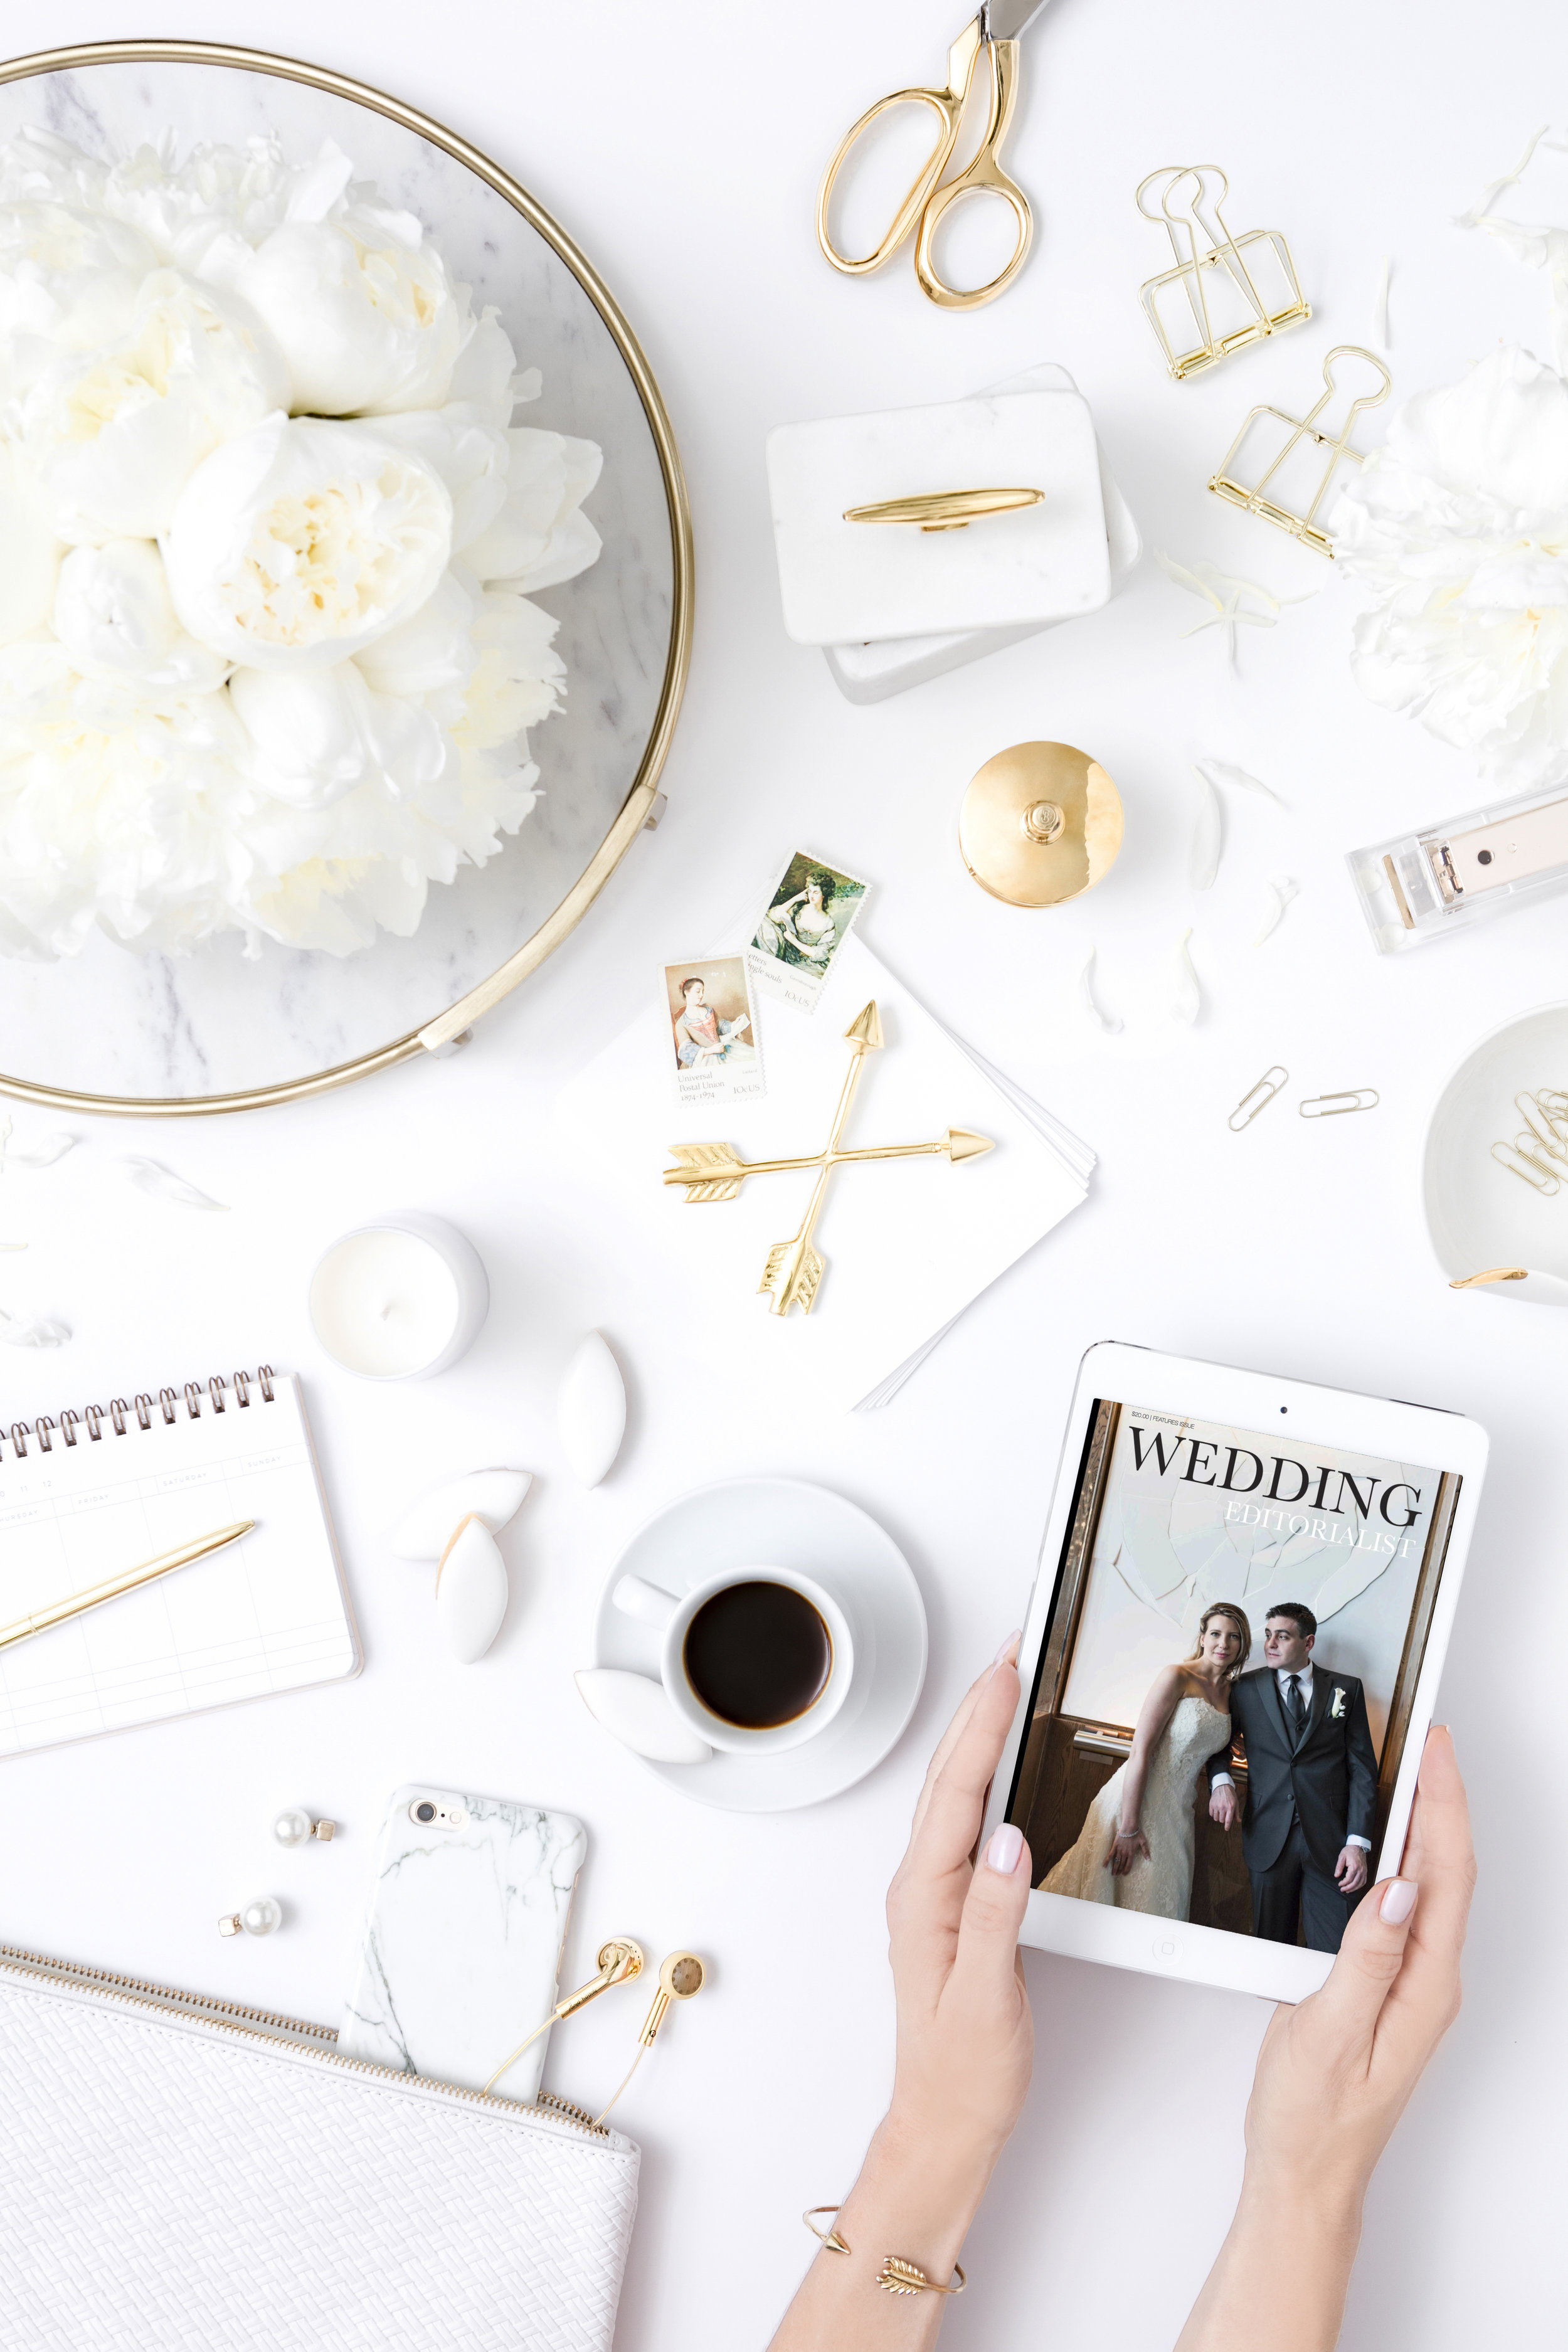 ANNIVERSARY ISSUE:  Sammy and Ian celebrated two years of marriage with a beautifully designed commemorative issue of The Wedding Editorialist. Their archival wedding album, crafted by AltF, is a mainstay in their home and a beloved treasure. This digital issue is easy to send and share, allowing our couple to keep their wedding images with them always. Their love story is told with beautiful images and thoughtful stories. Thank you to our partners at AltF Photograph, Andrea Eppolito Events, Destinations by Design, and the Mandarin Oriental for creating such an outstanding event. To read more,  CLICK HERE.